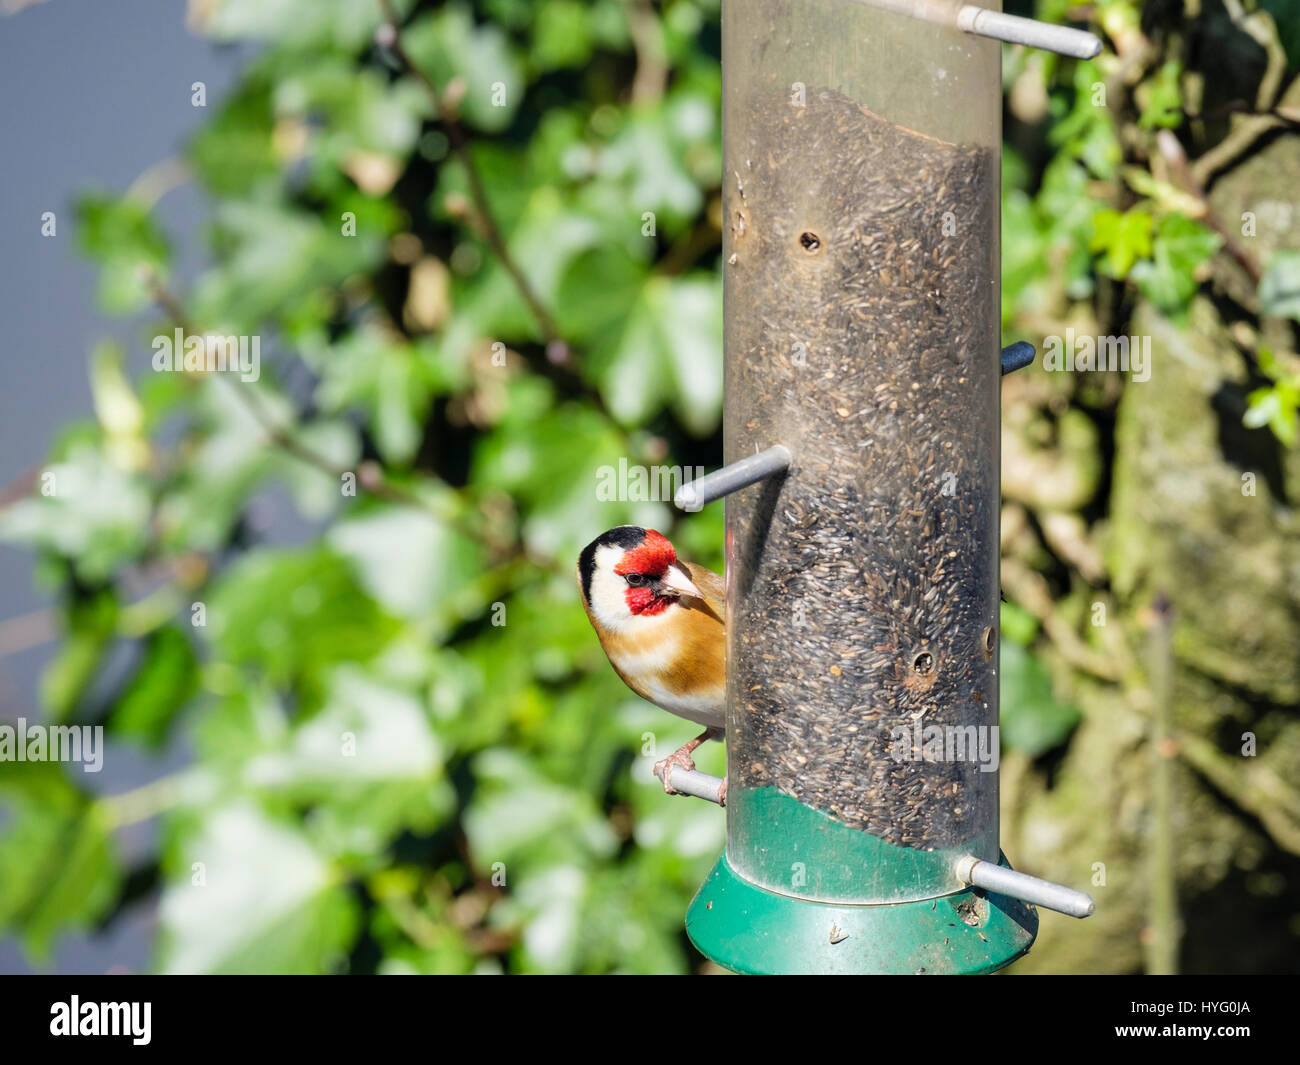 Male European Goldfinch (Carduelis carduelis) finch in spring on a garden bird feeder in a hedgerow. Wales, UK Britain - Stock Image